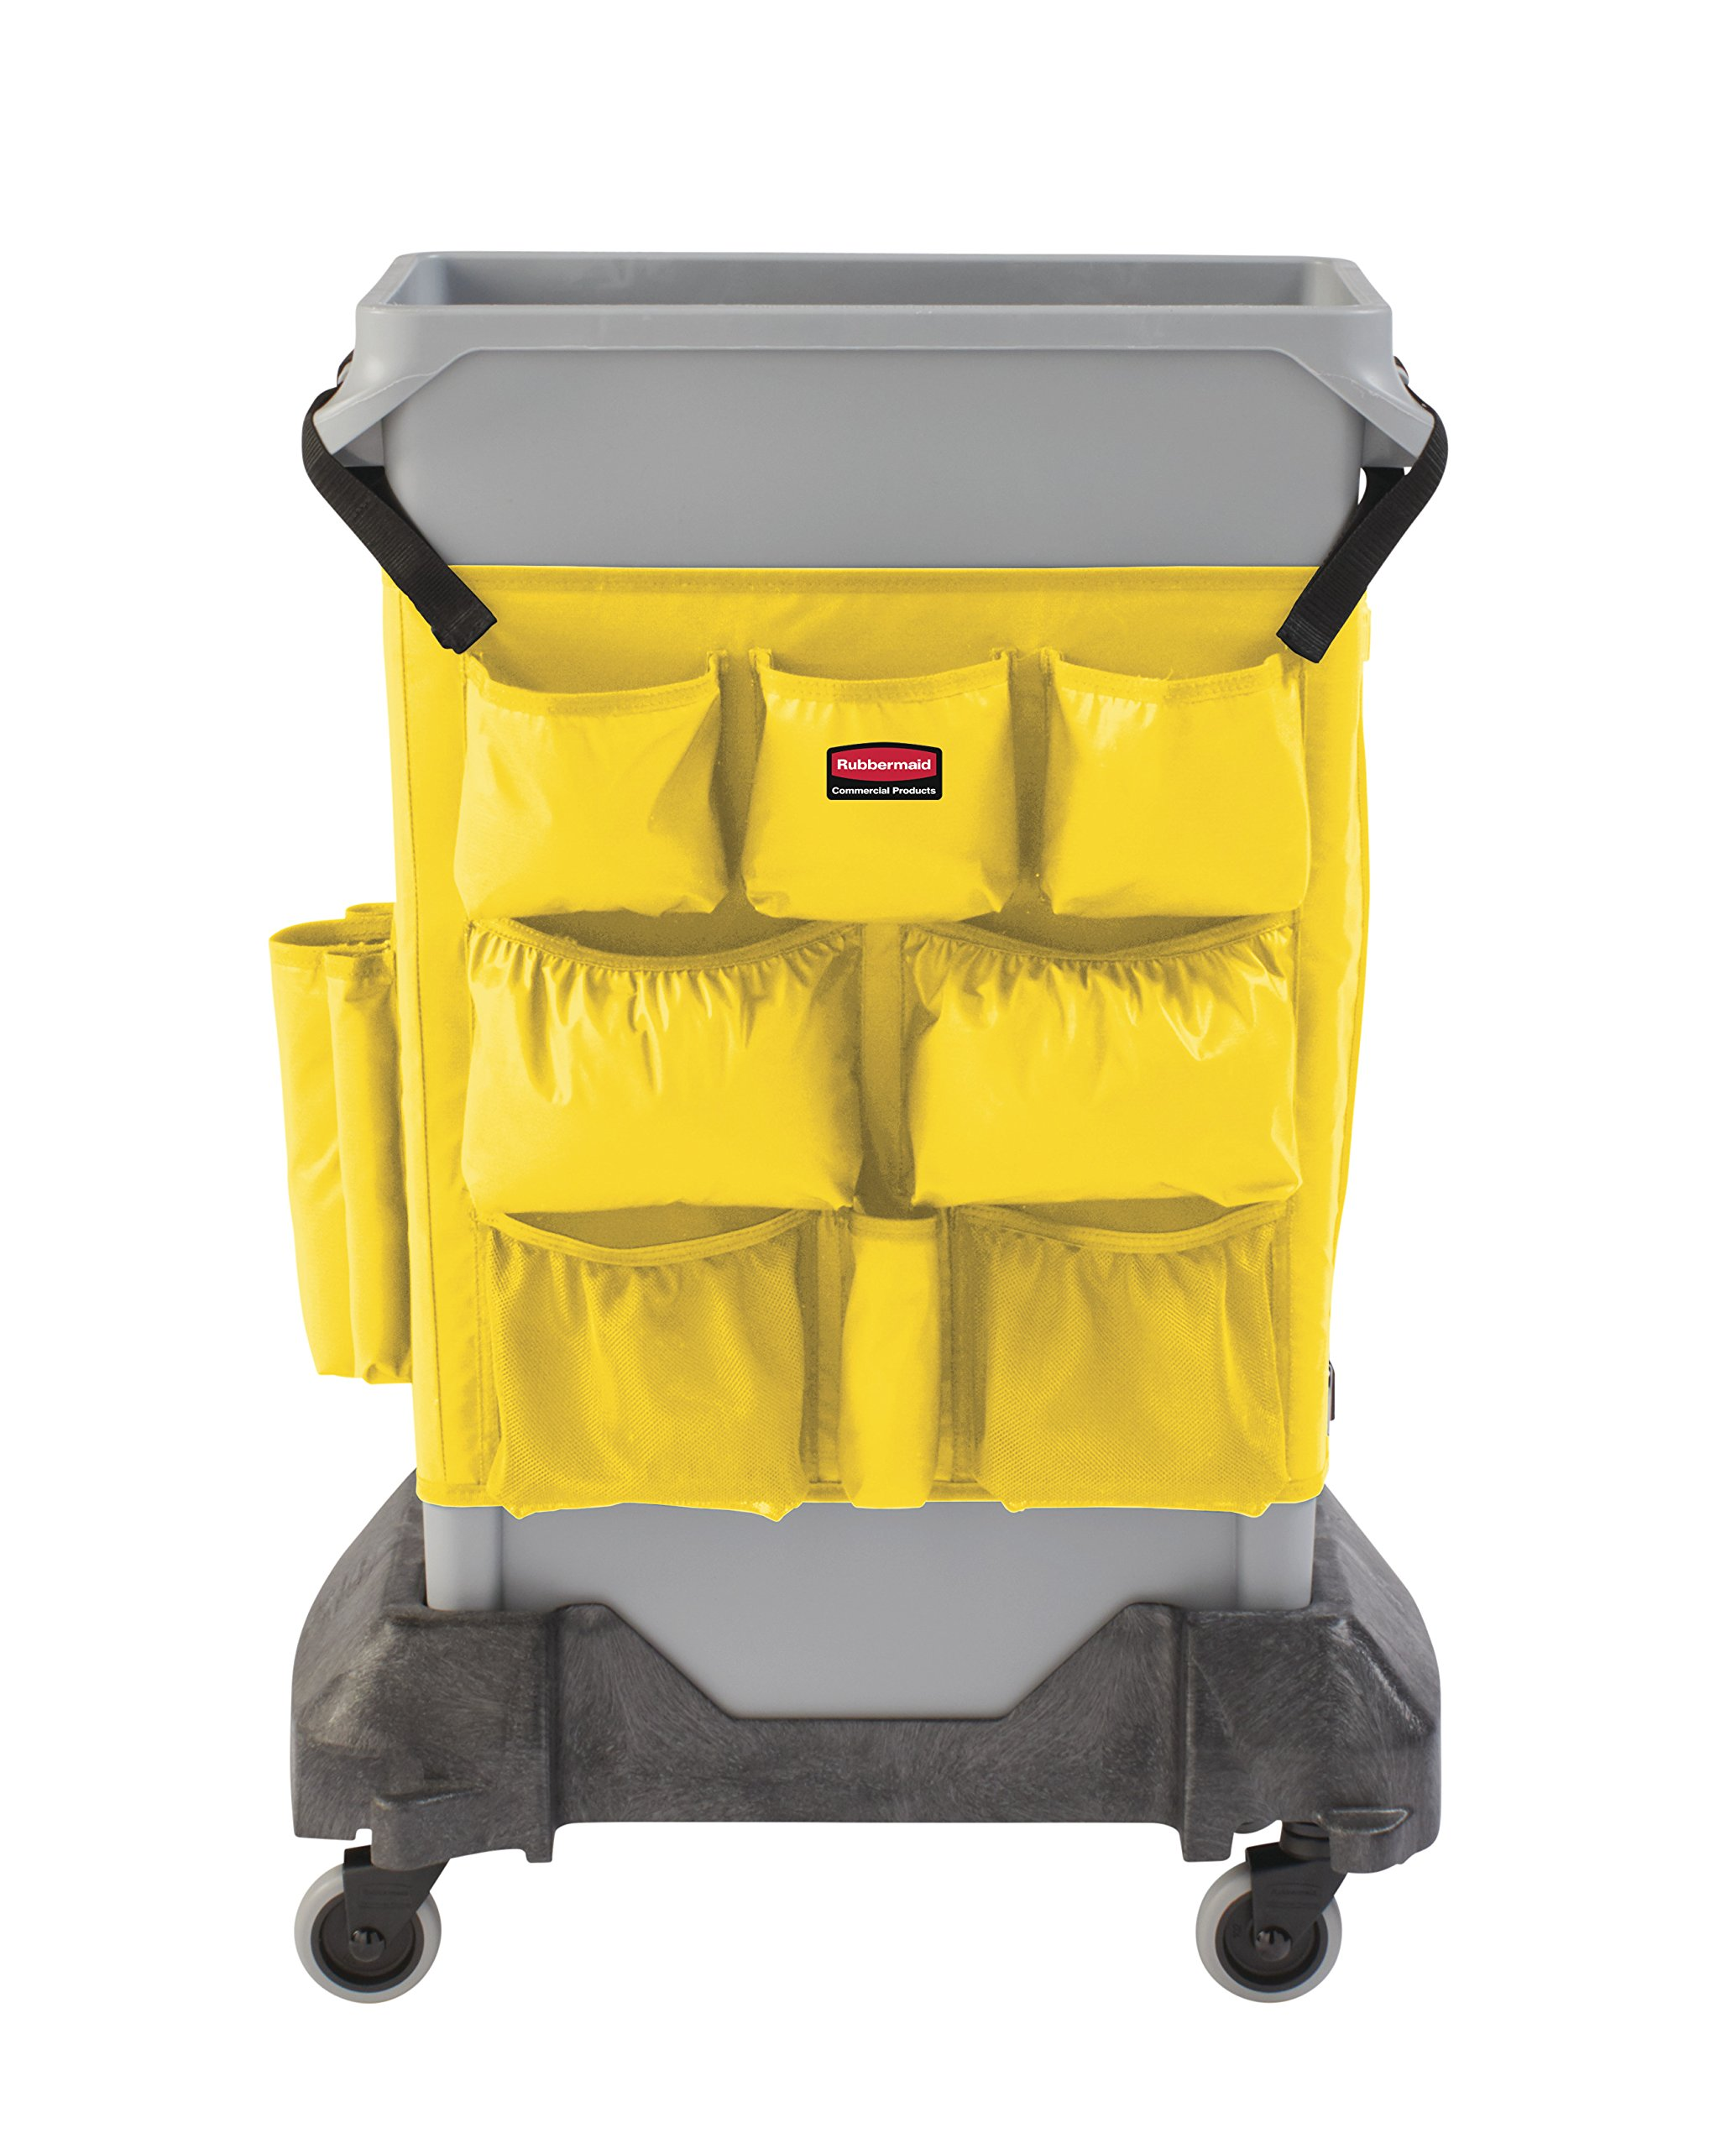 Rubbermaid Commercial Products 2032951 Slim Jim Caddy Bag for 23 gal, Yellow by Rubbermaid Commercial Products (Image #4)